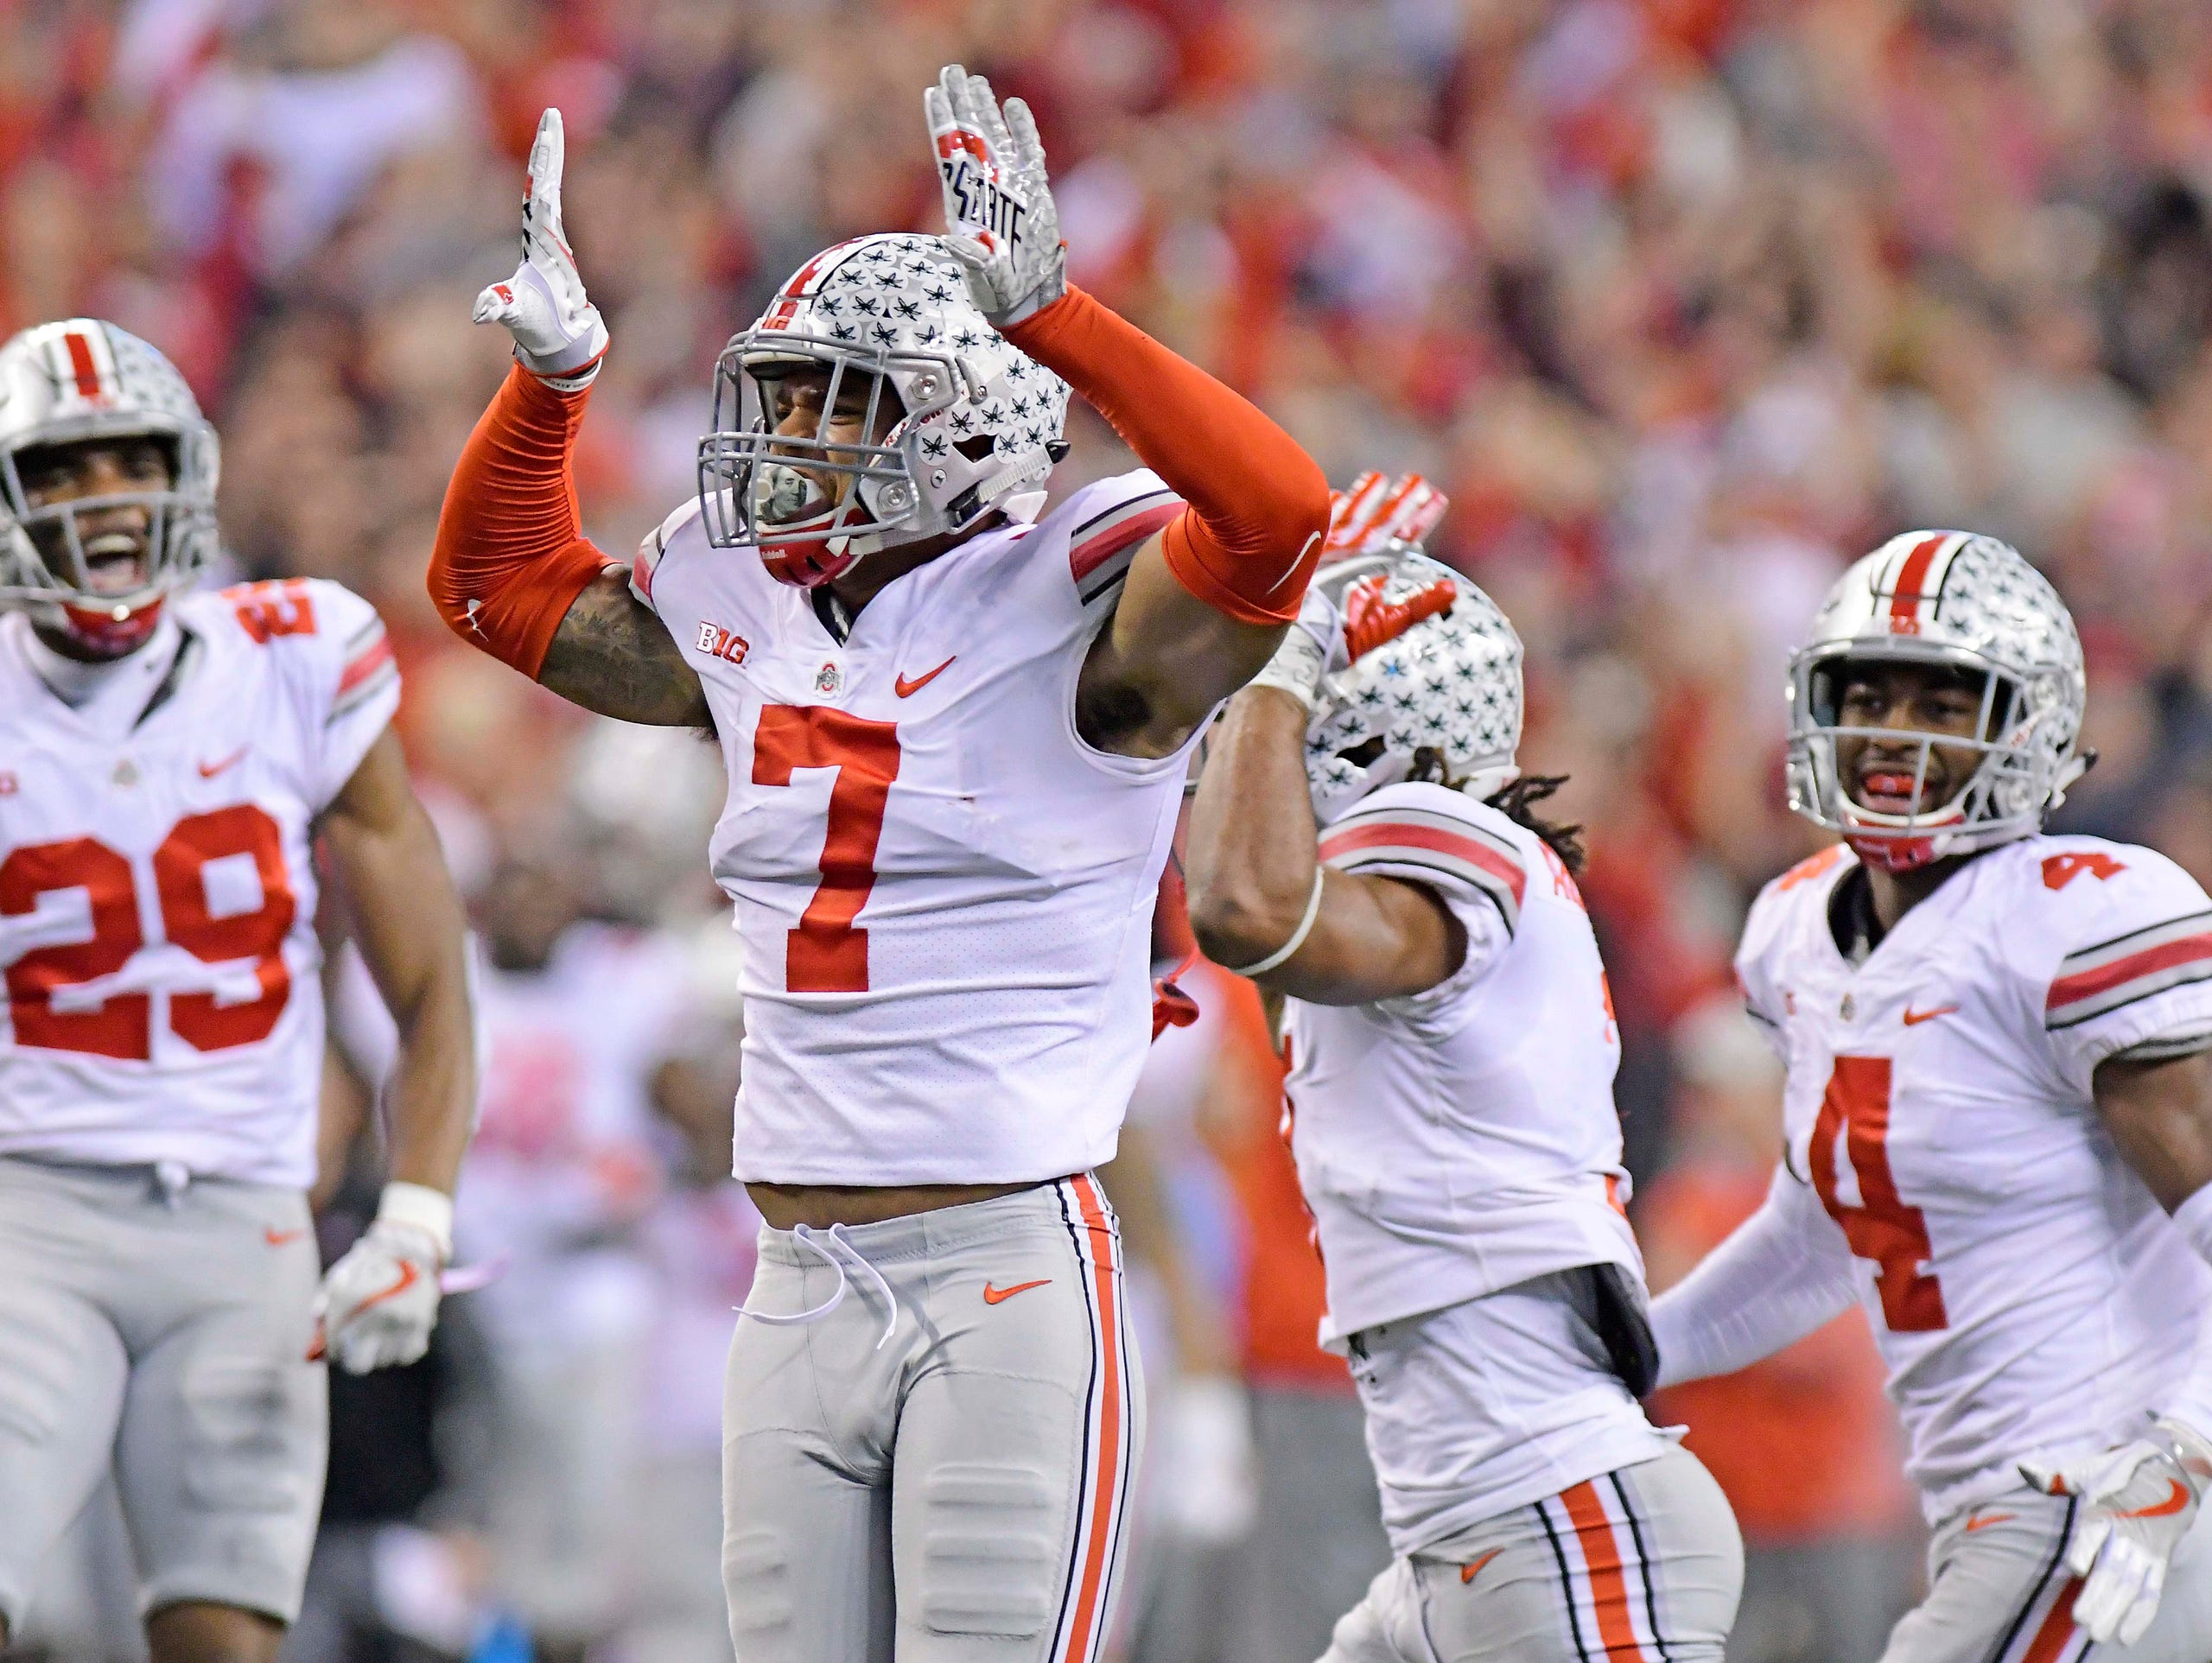 Ohio State safety Damon Webb celebrates after making